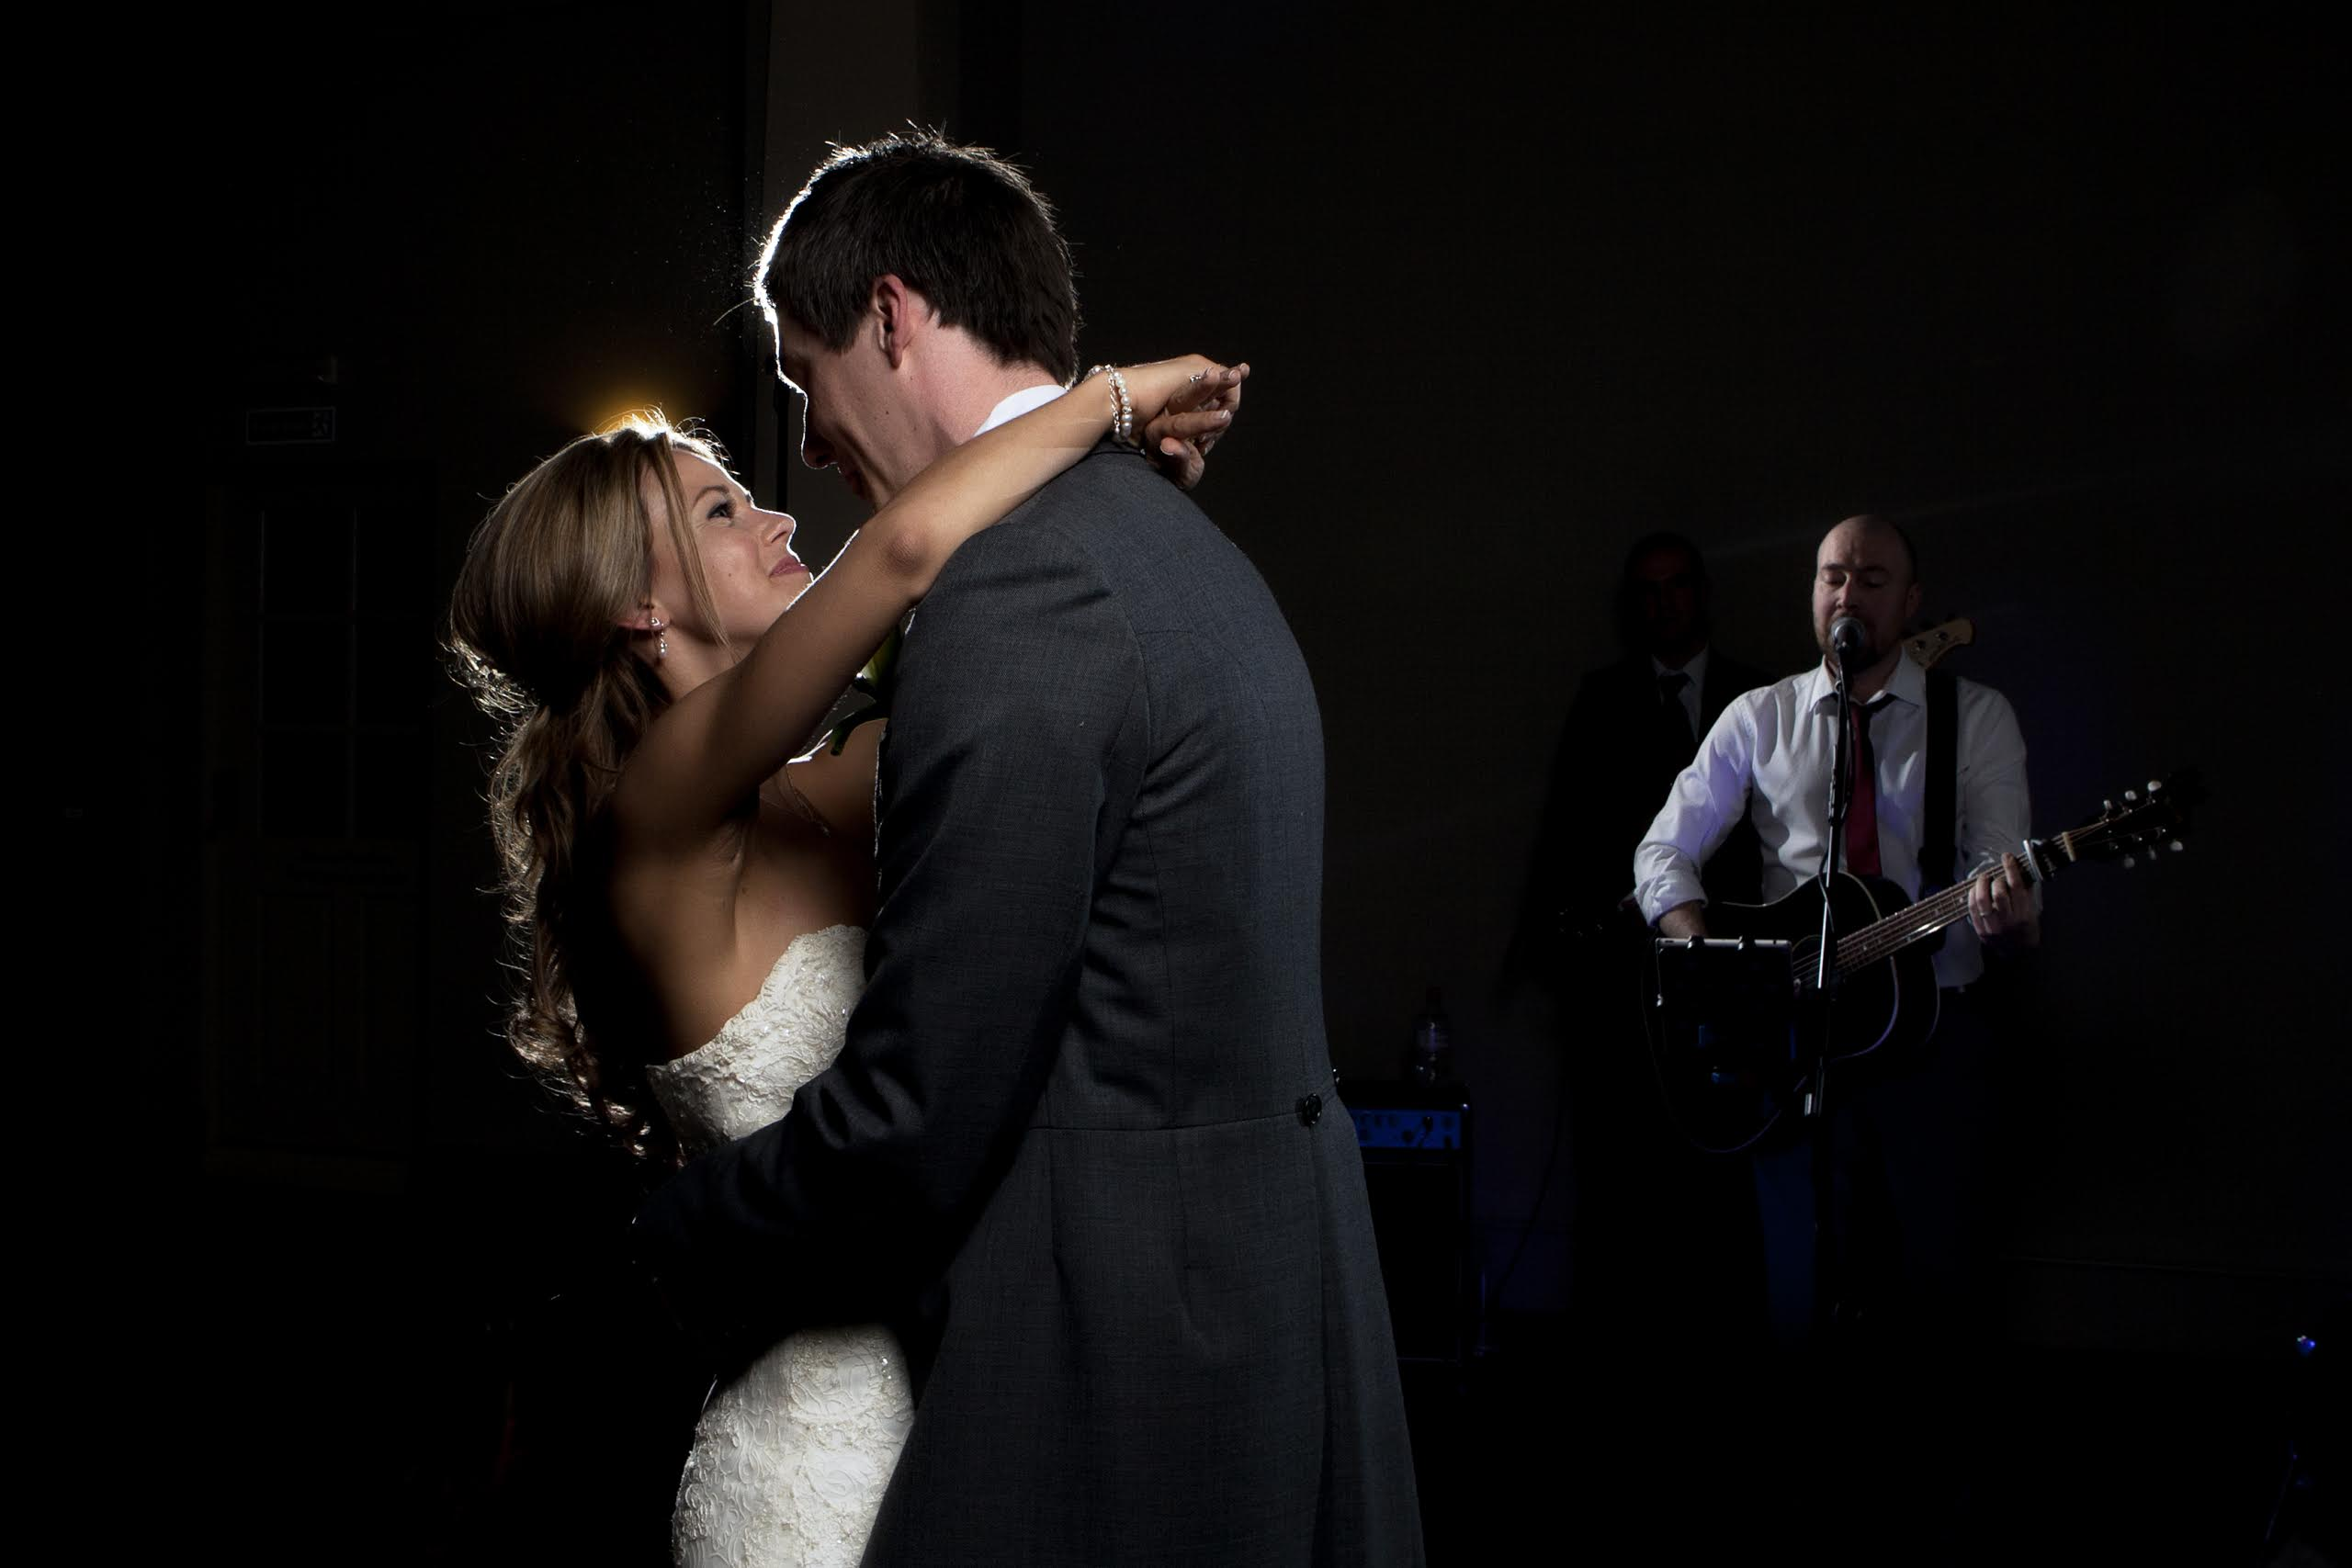 Whatever The Occasion Weddings Parties And Corporate Events We Can Provide Live Music To Enhance Your Event Presenting A Memorable Day Or Night For Each